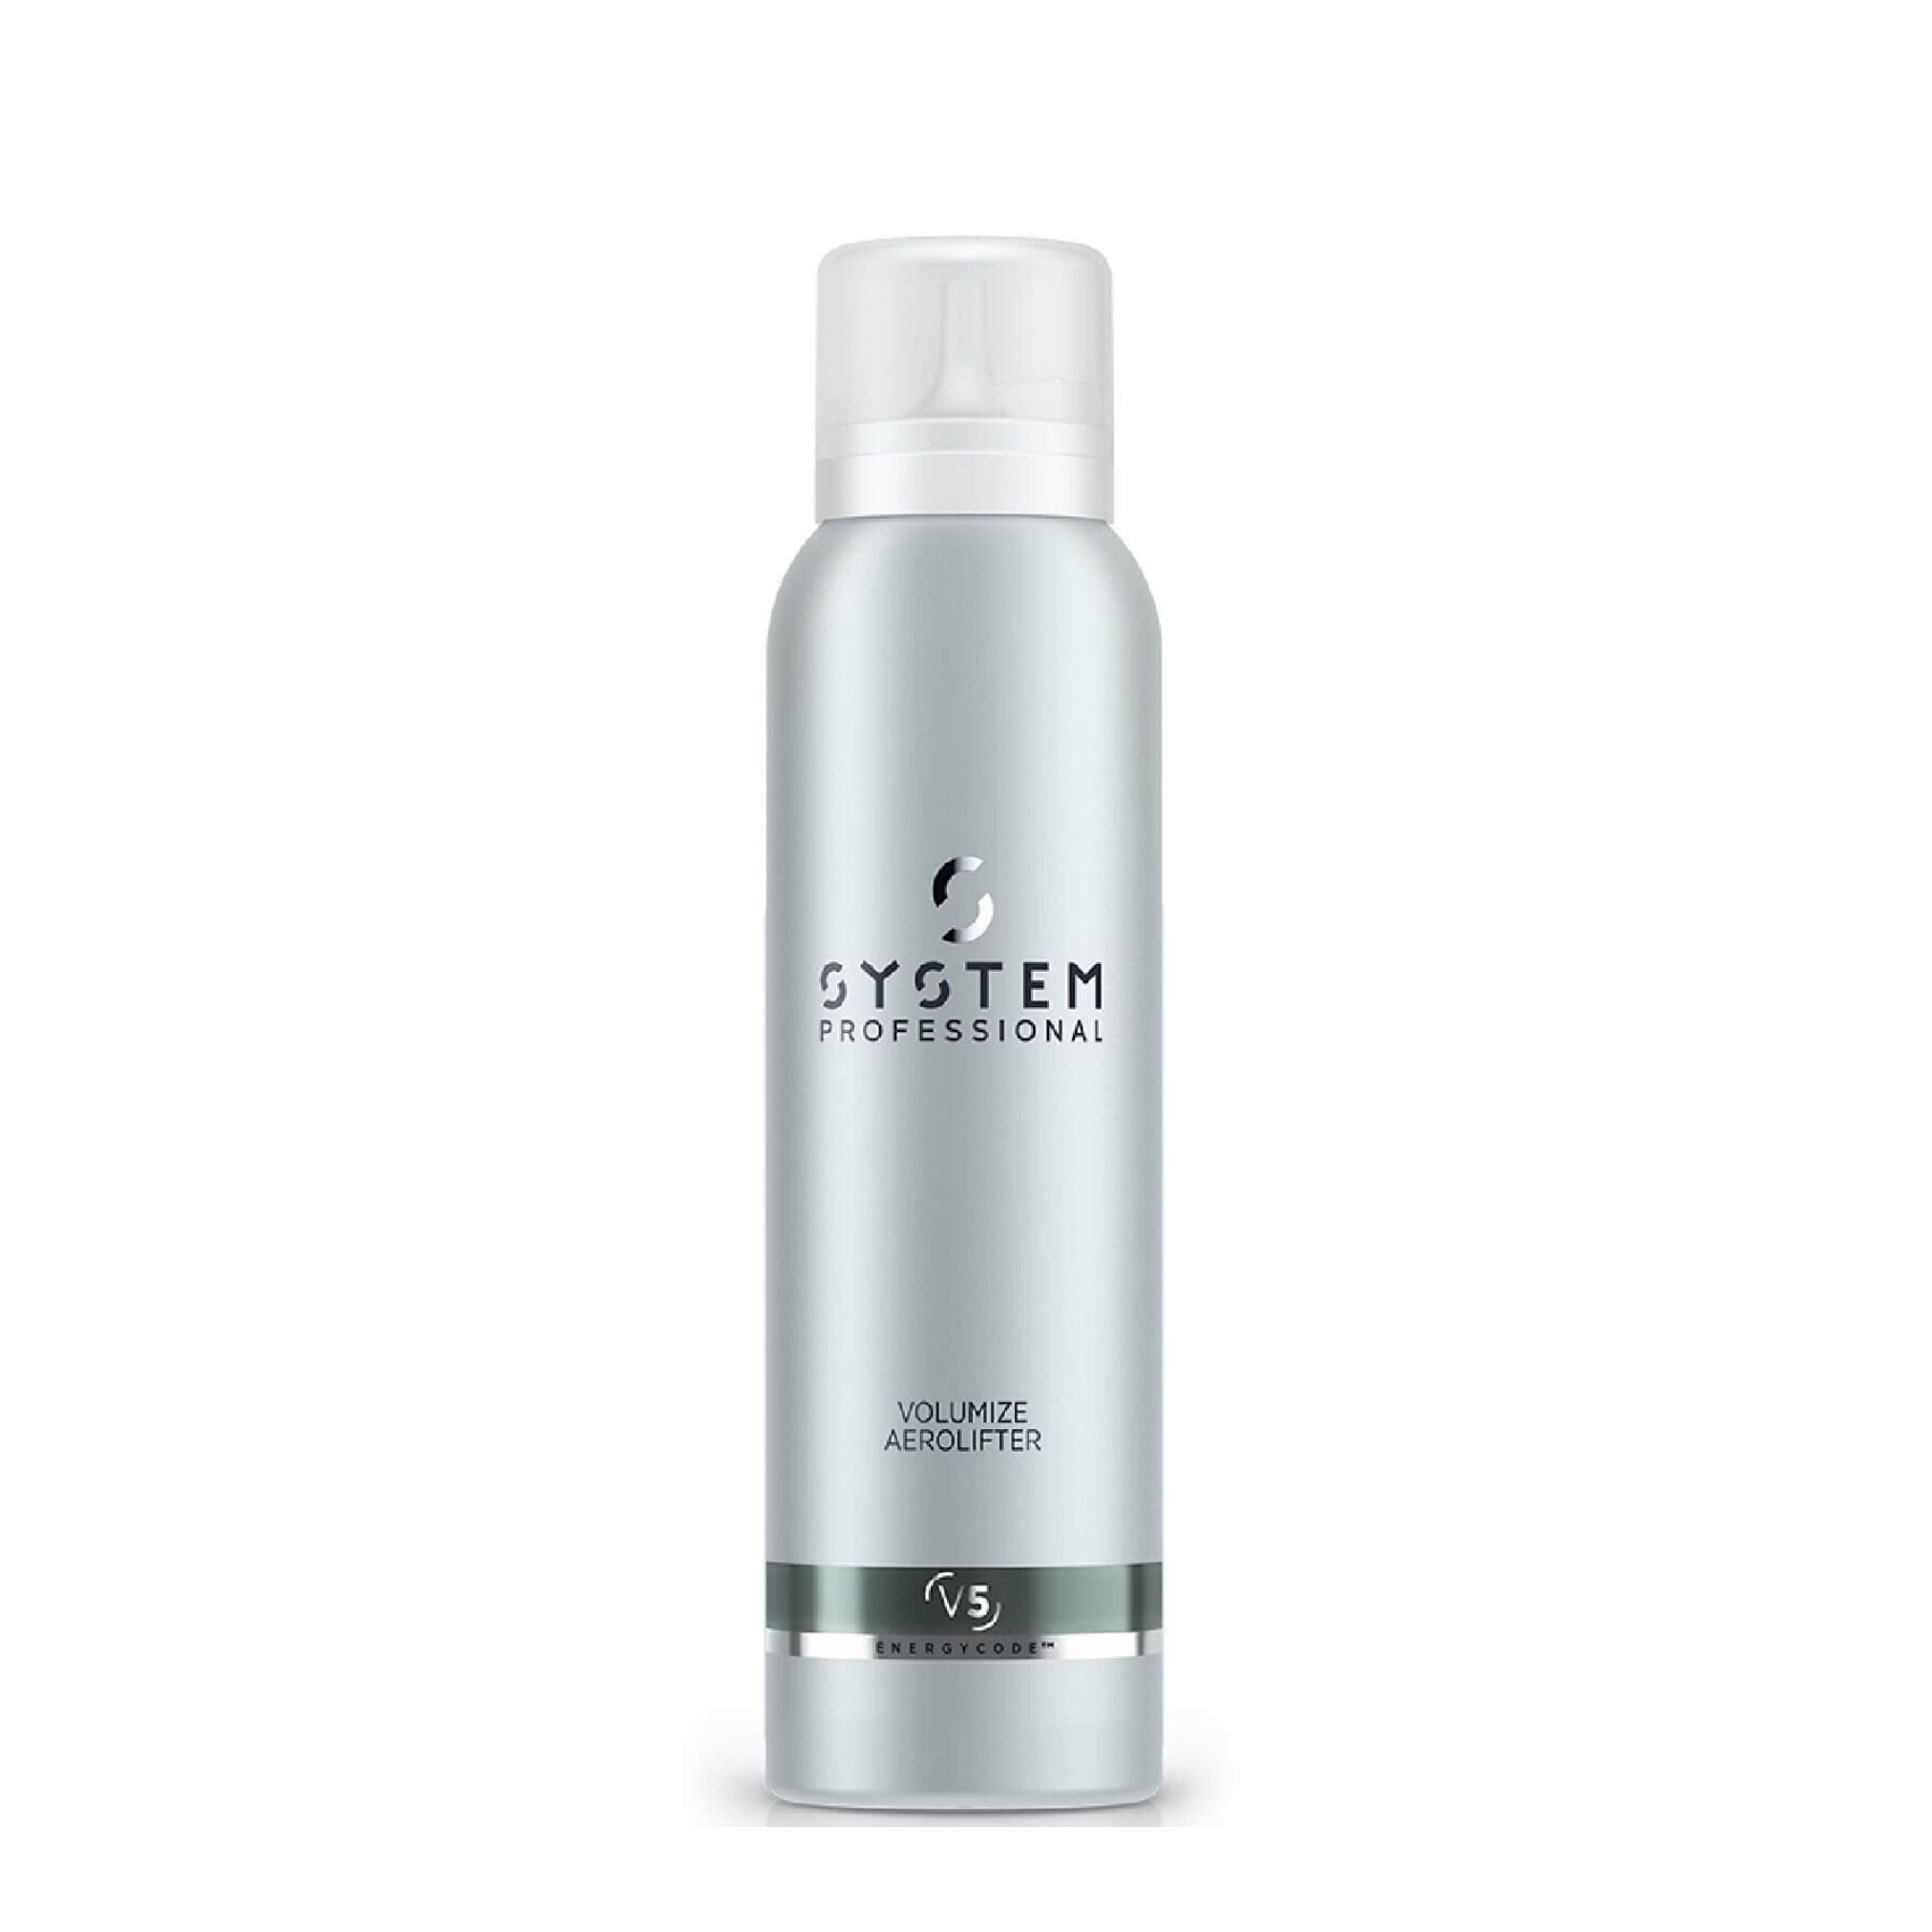 System Professional Volume Aerolift 150ml